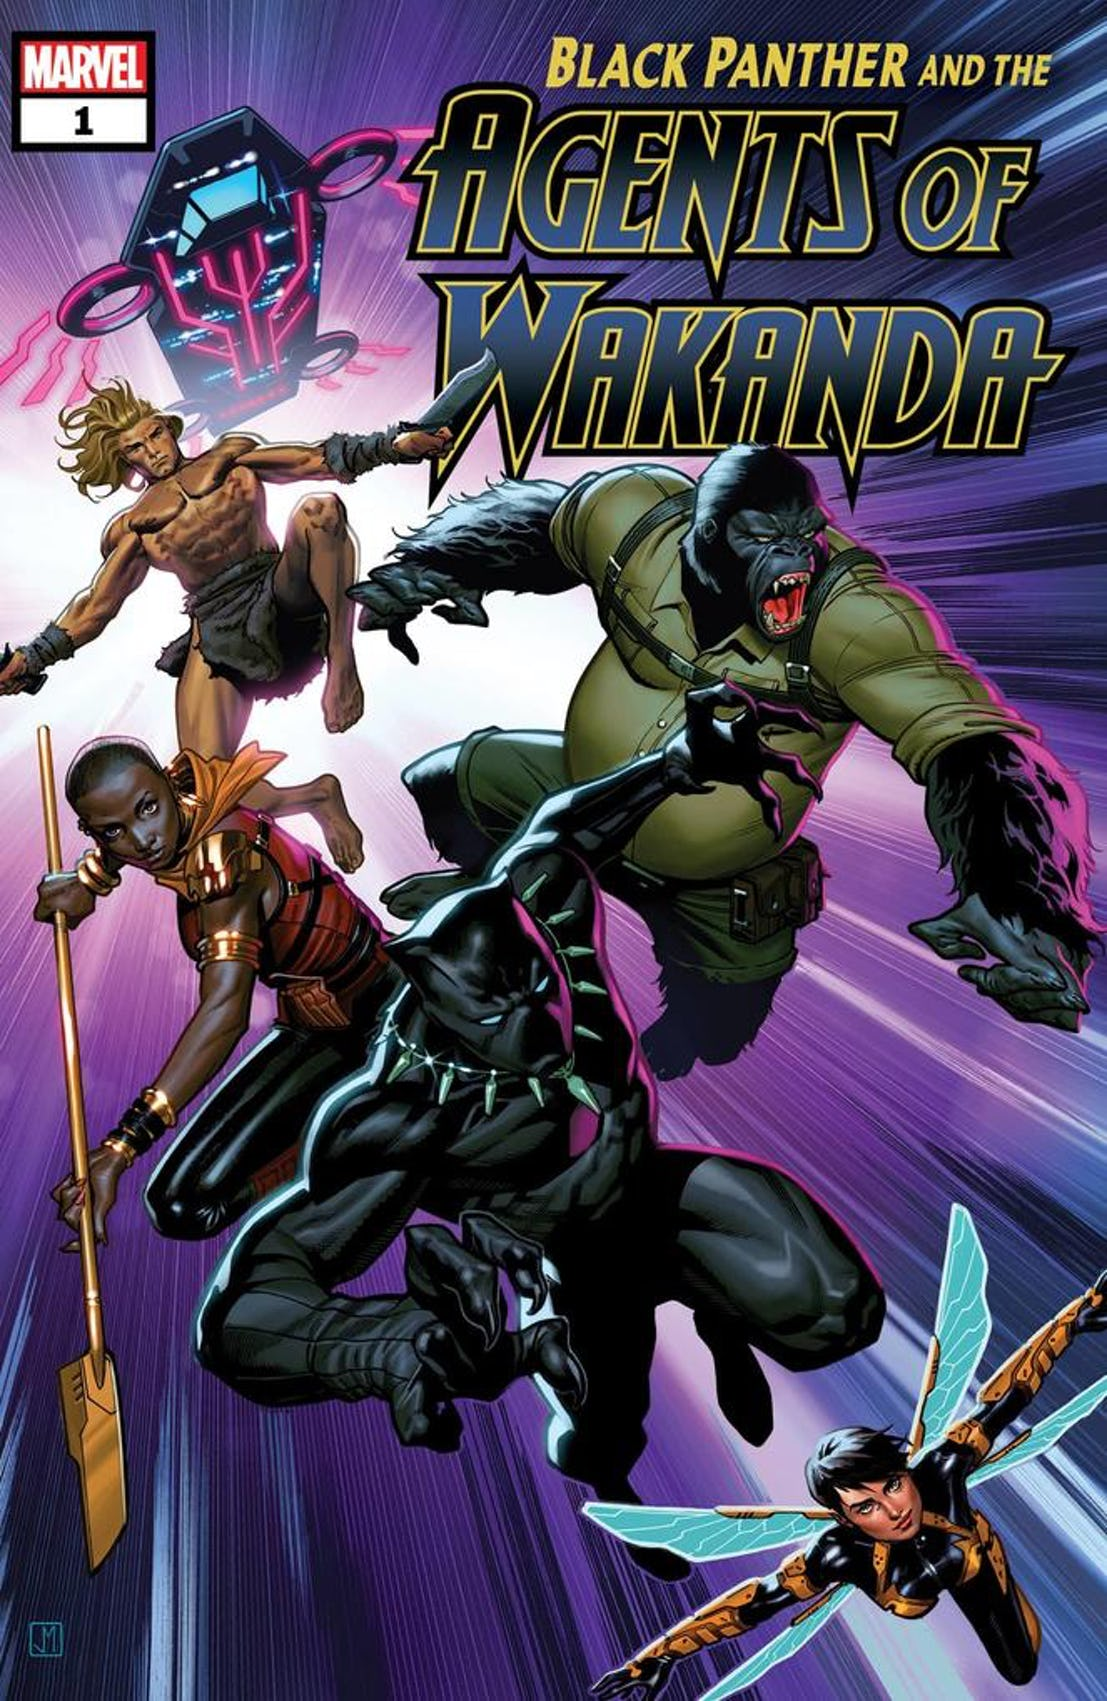 black-panther-agents-of-wakanda-cover.jpg